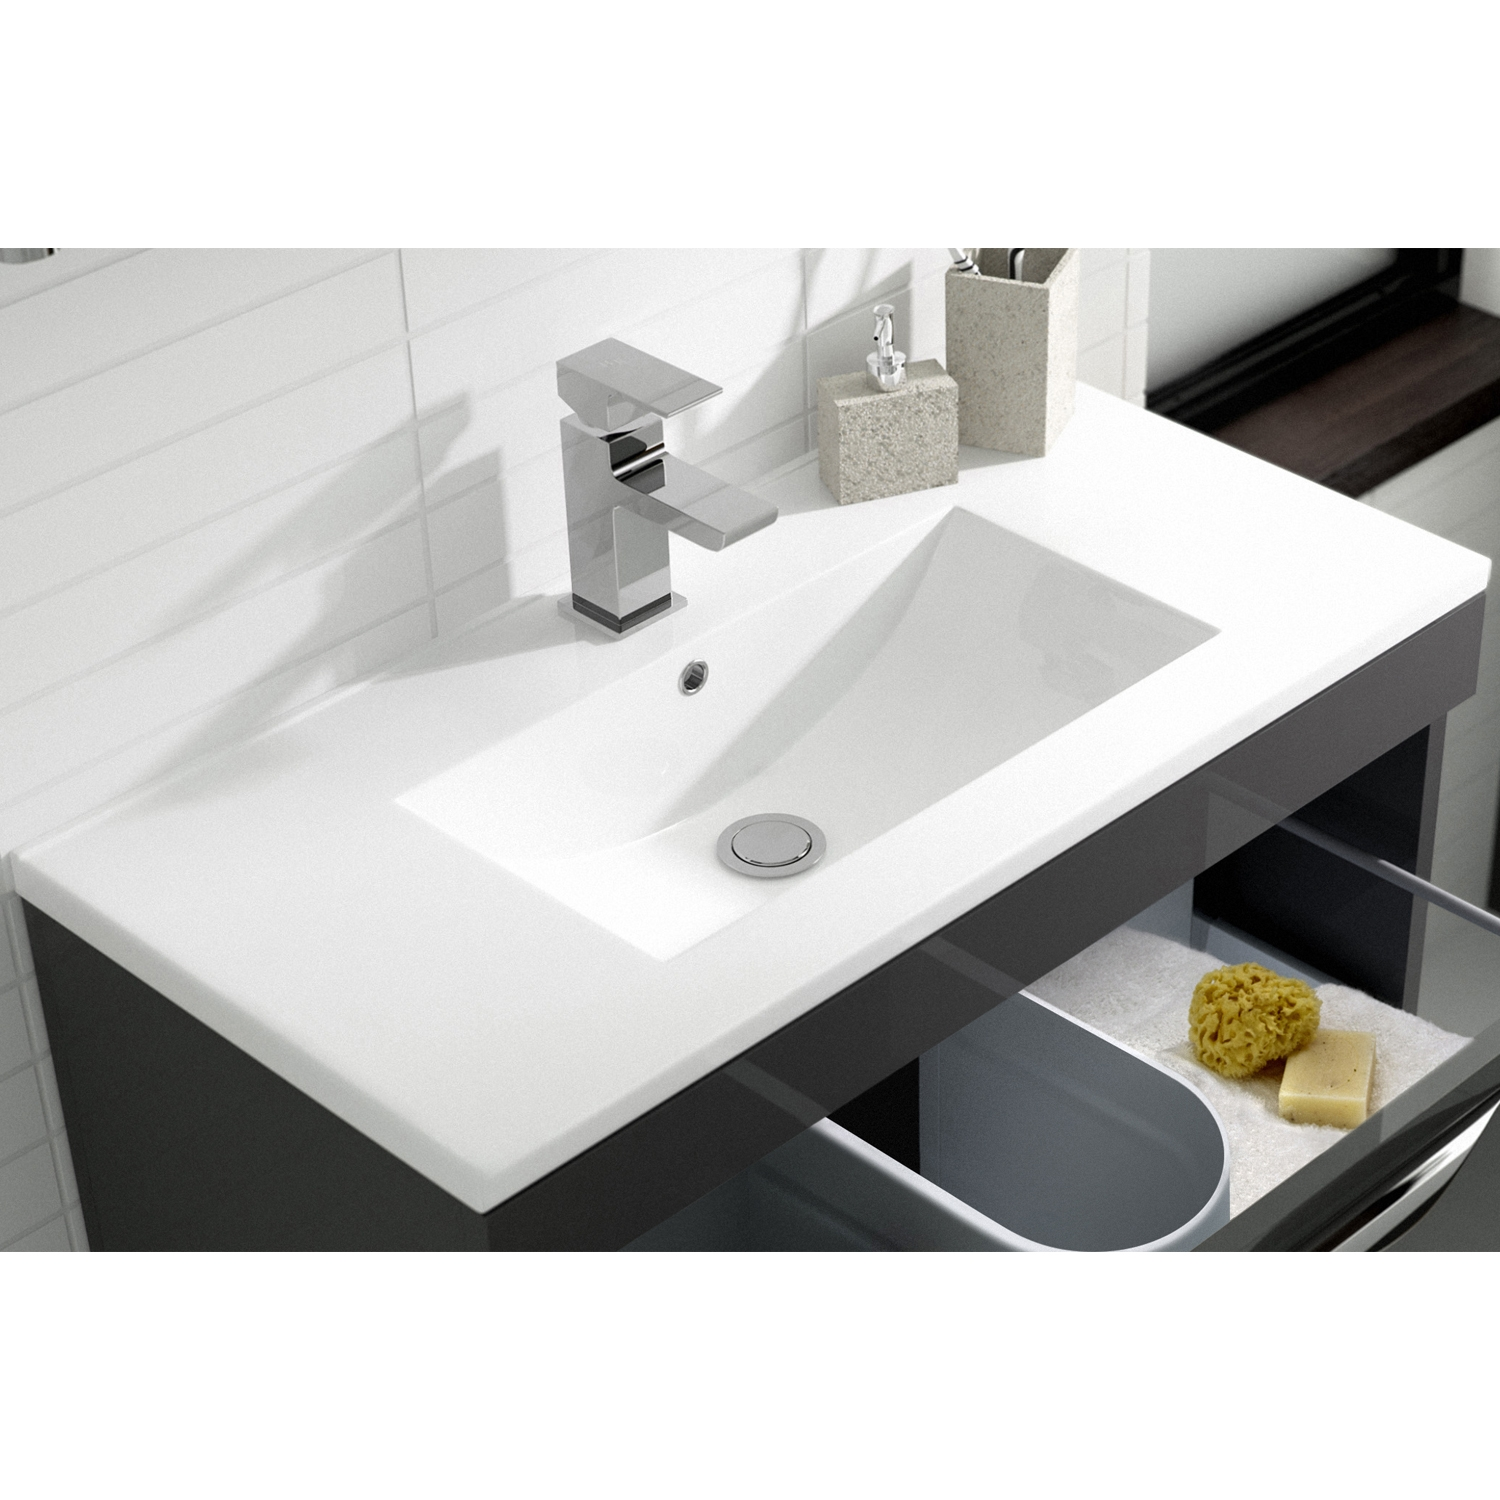 Hudson Reed Memoir Floor Standing Vanity Unit with Minimalist Basin 2 600mm W Gloss Grey 1 Tap Hole